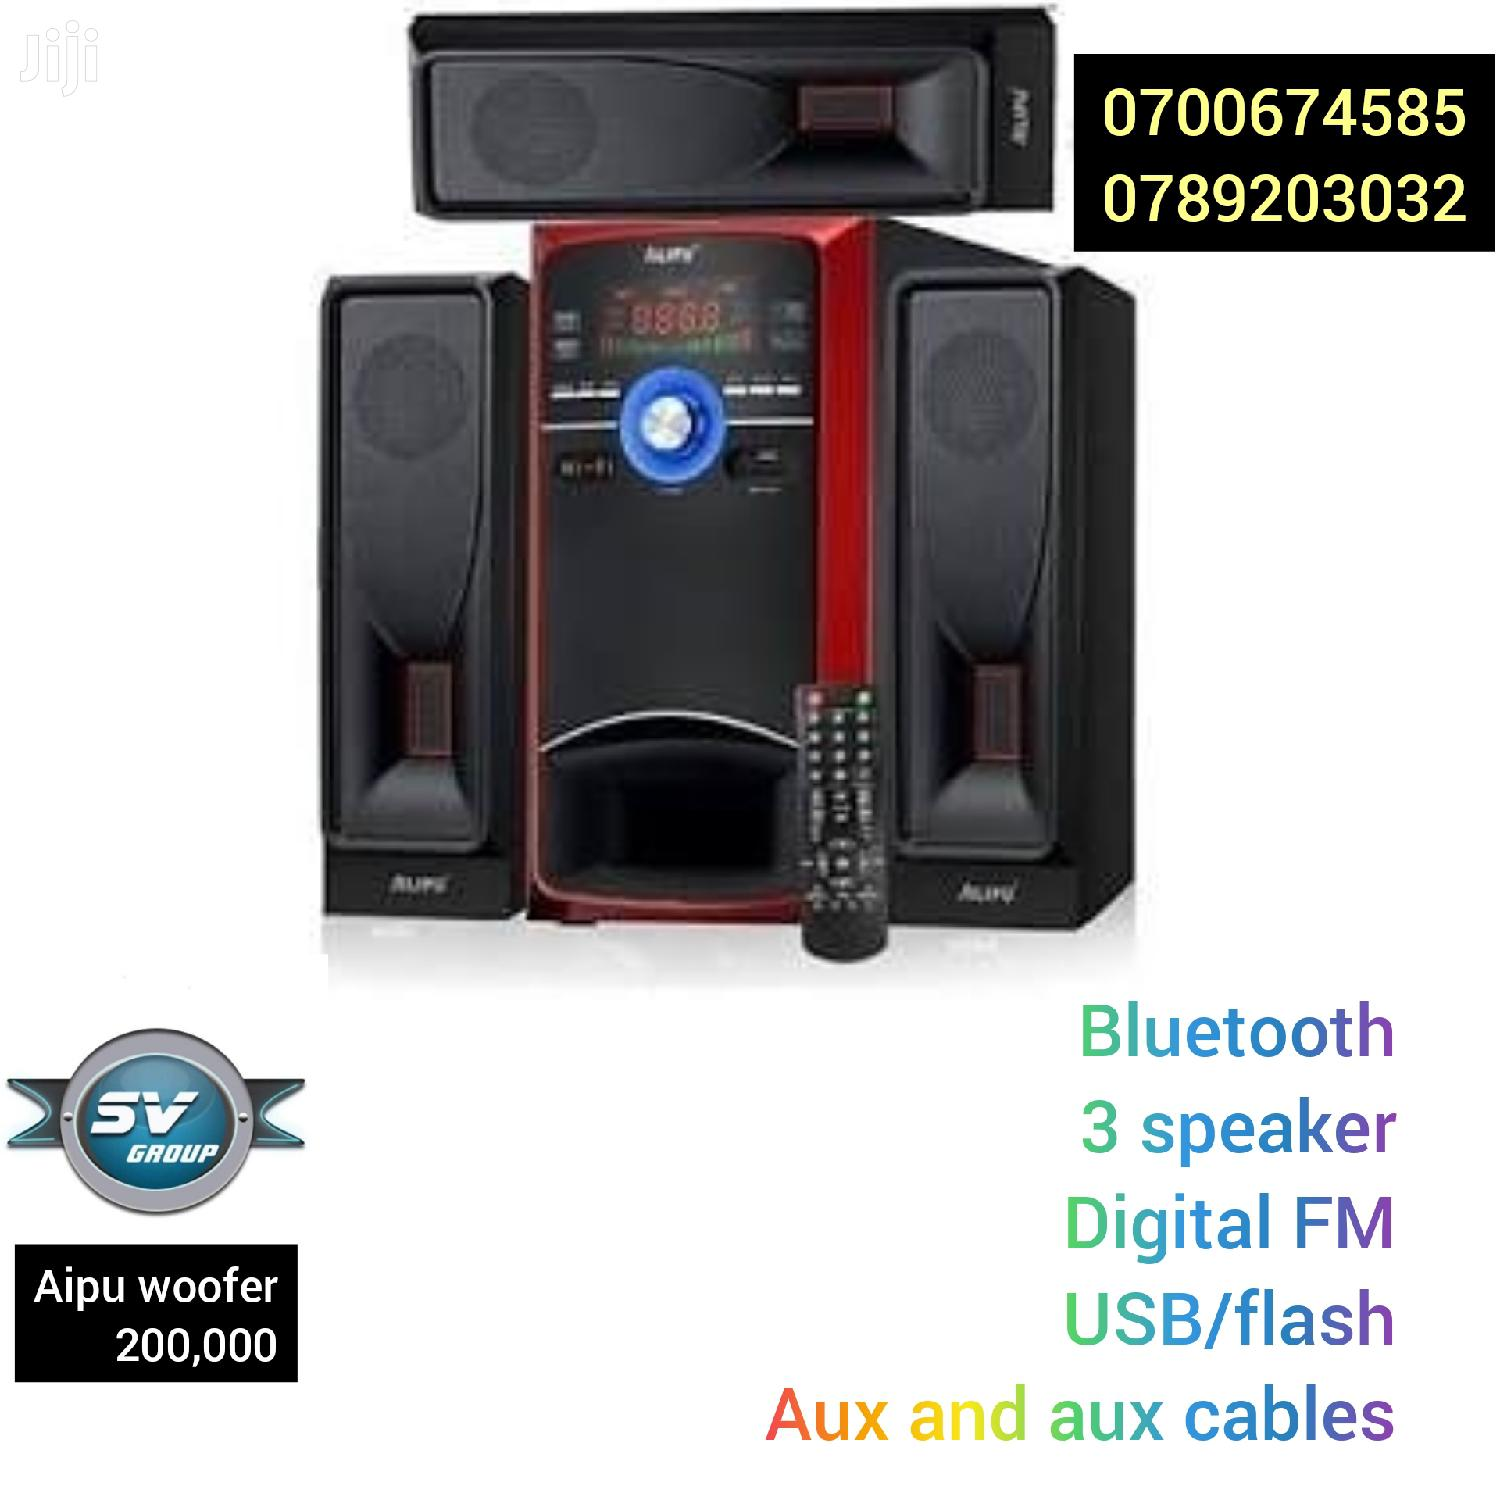 Brand New Alipu Bluetooth Woofer